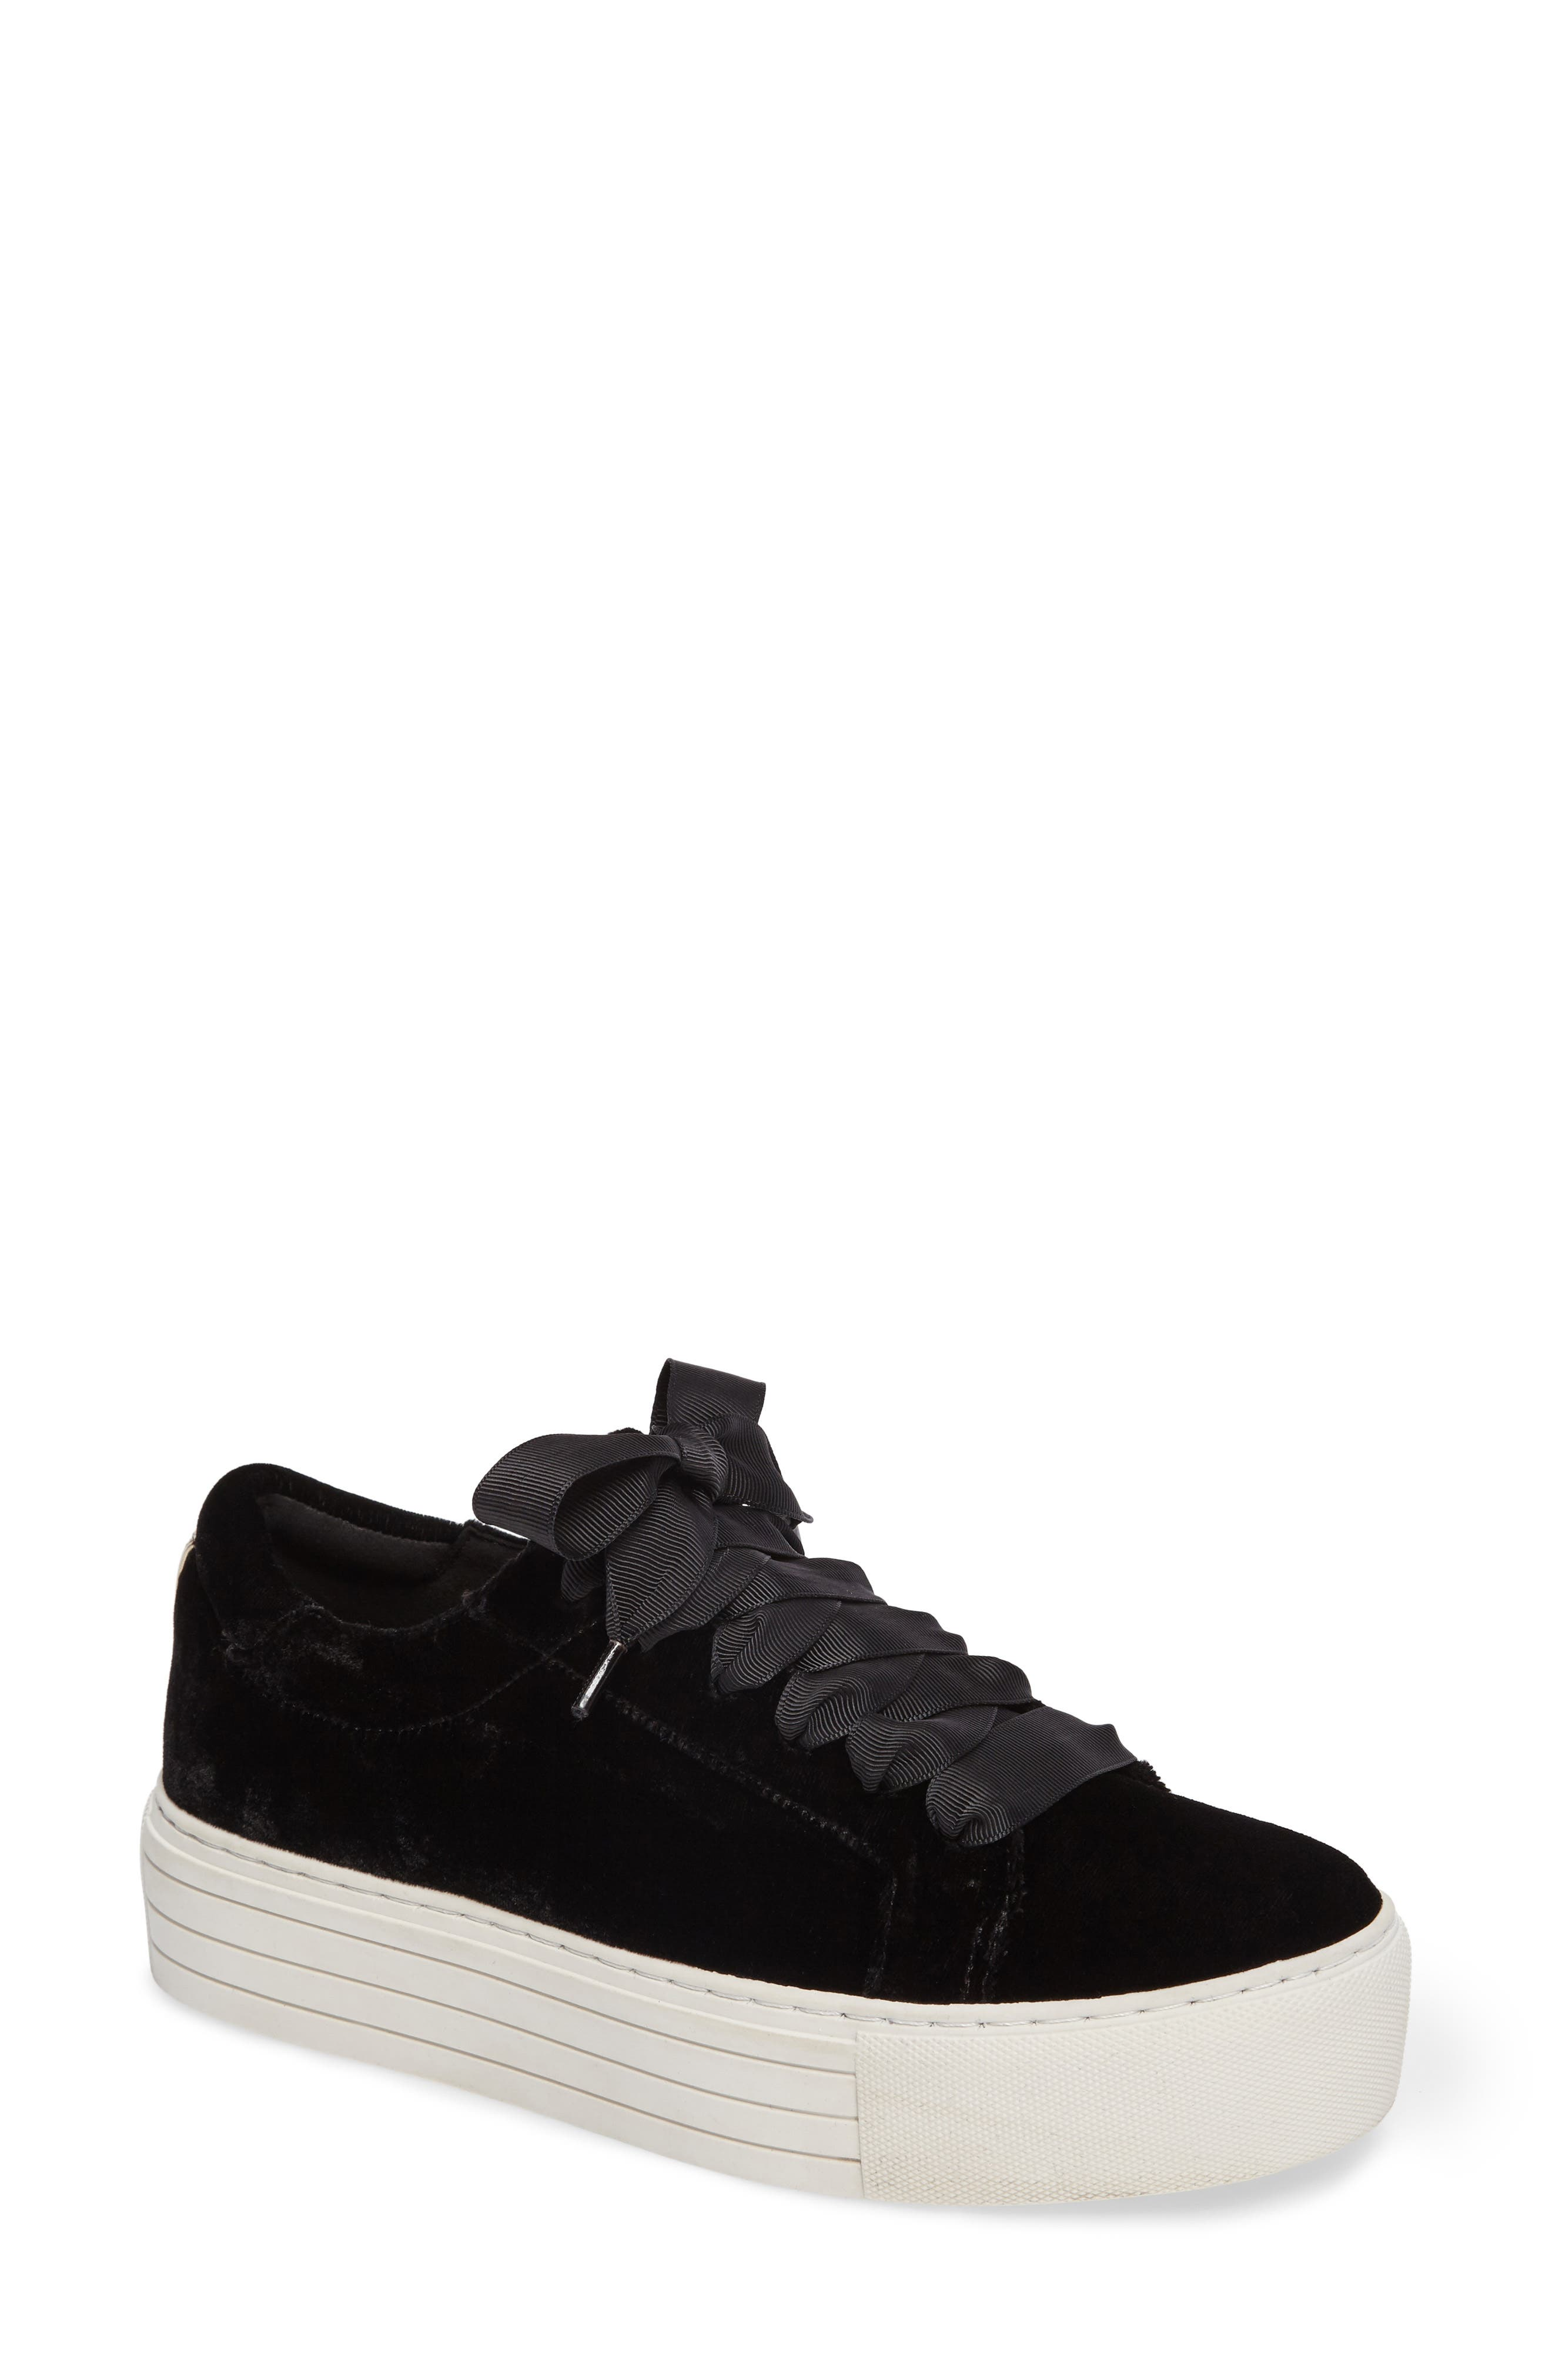 Alternate Image 1 Selected - Kenneth Cole New York Abbey Platform Sneaker (Women)